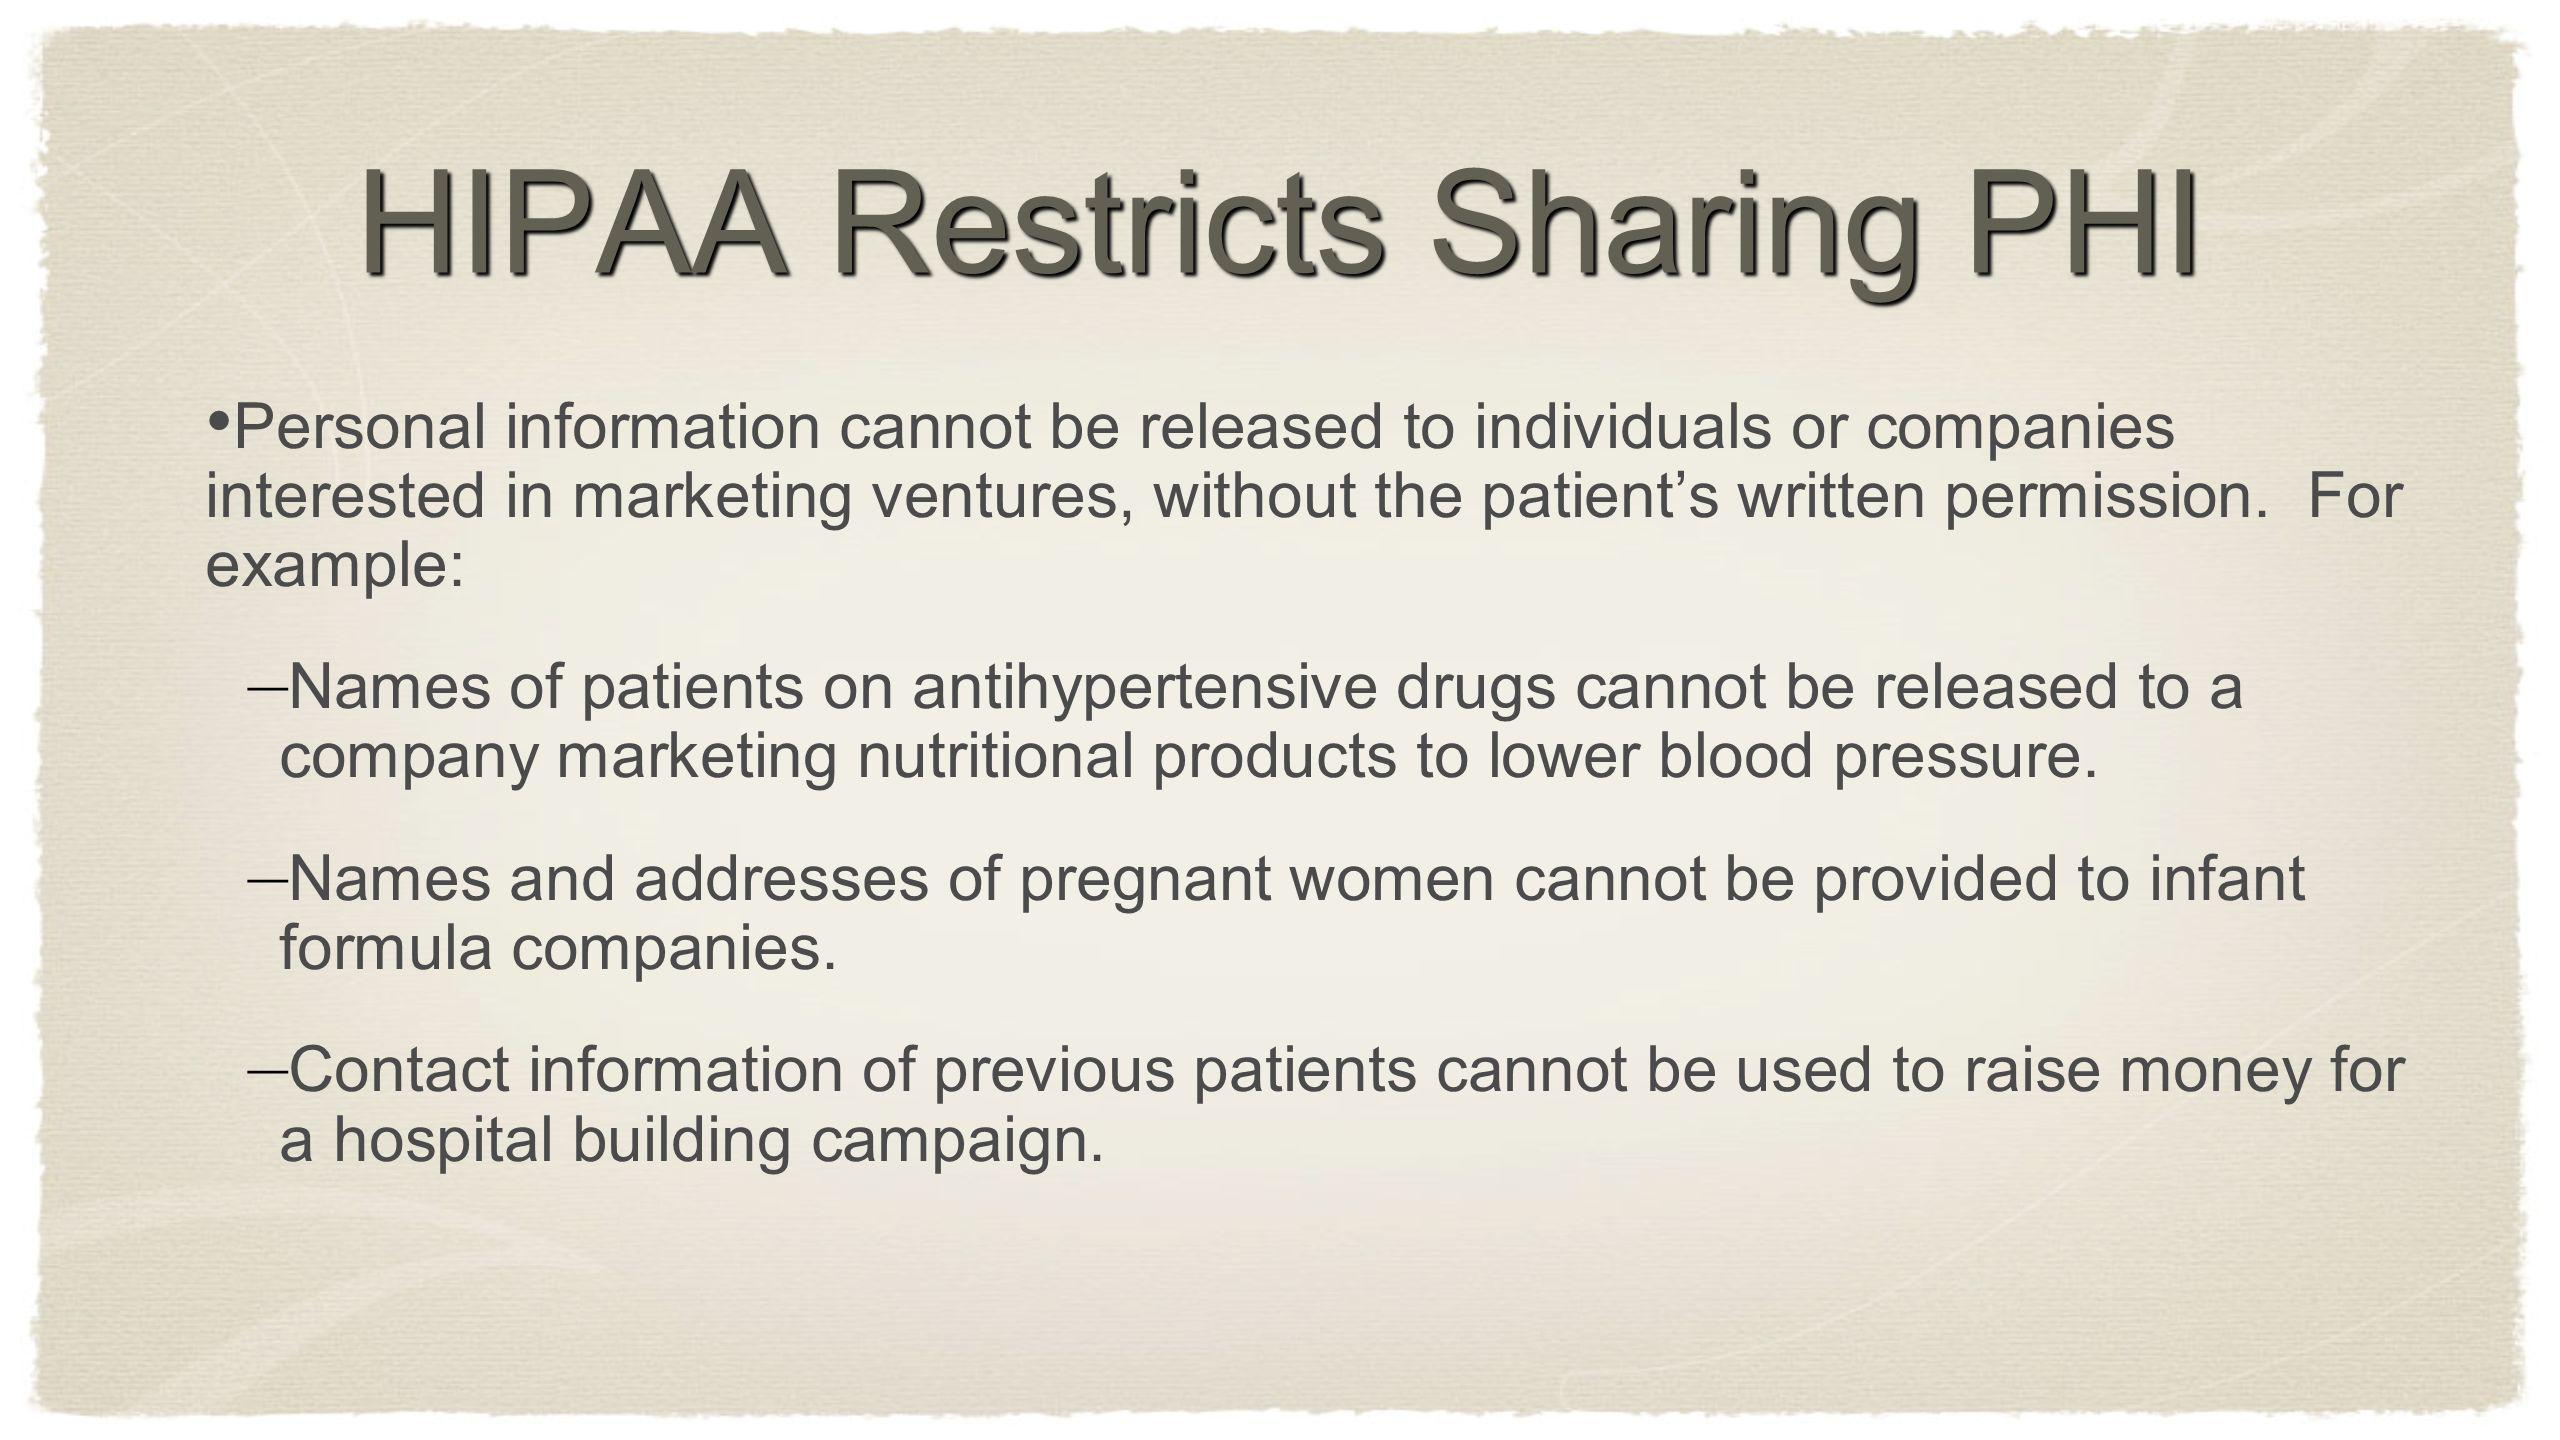 HIPAA Restricts Sharing PHI Personal information cannot be released to individuals or companies interested in marketing ventures, without the patients